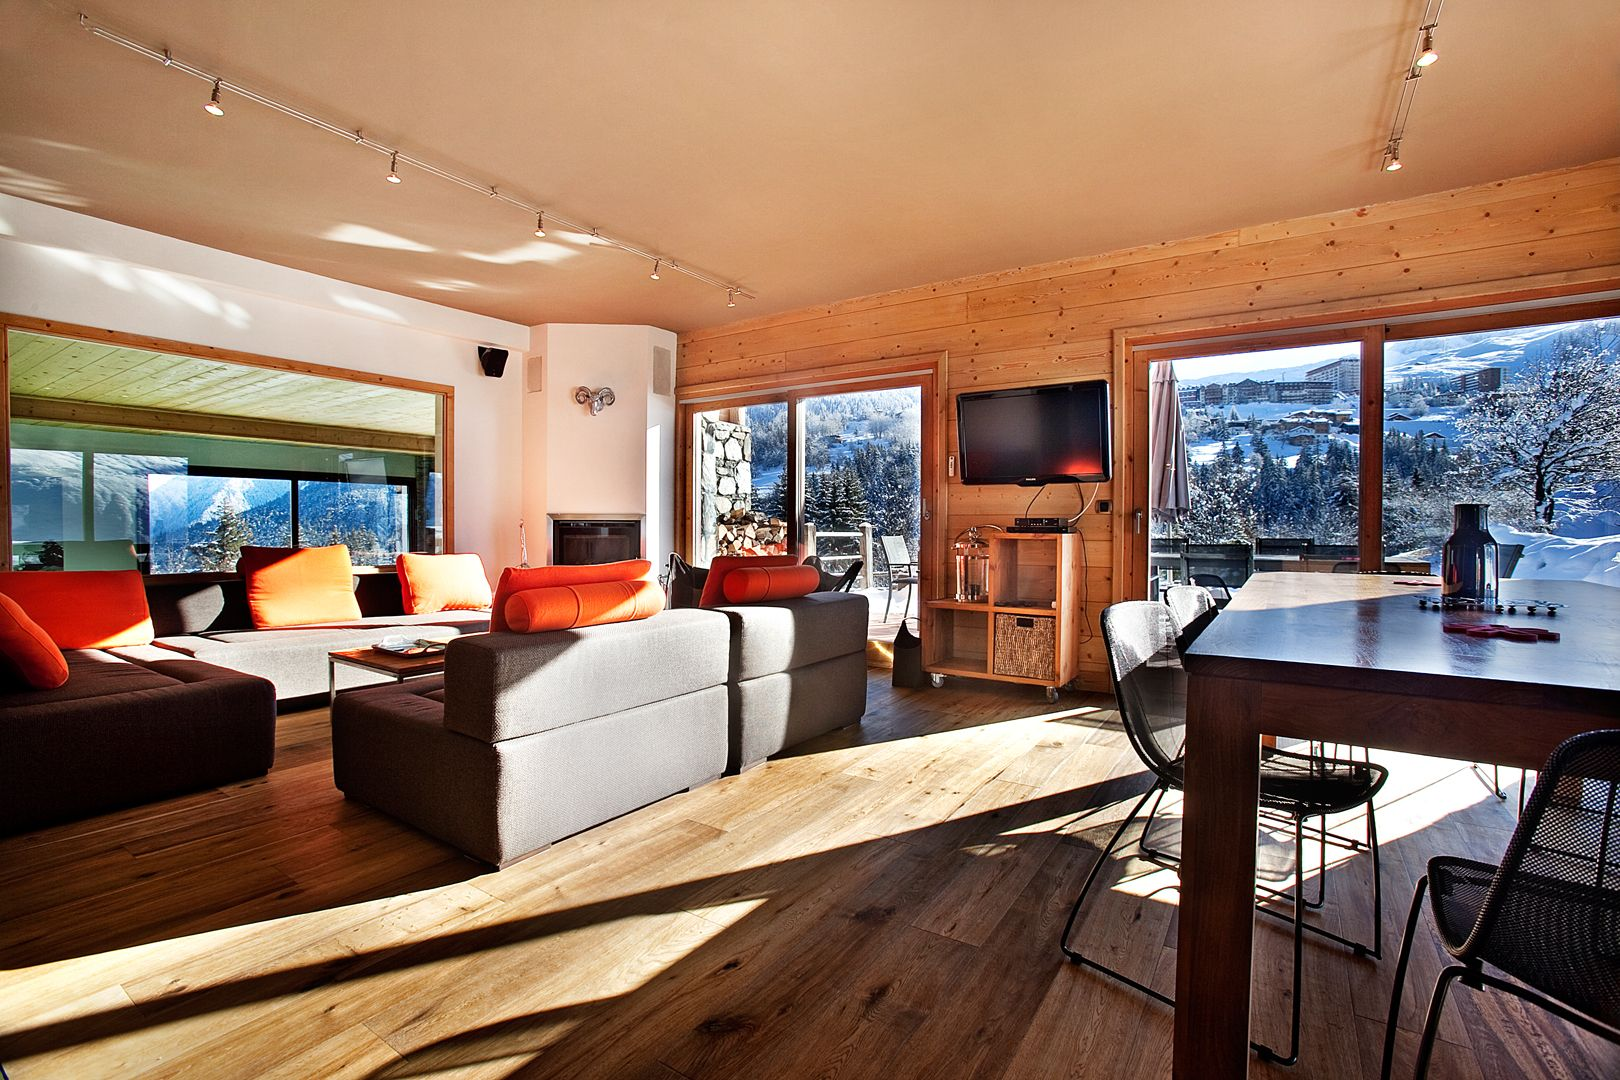 Enjoy the comfort of your chalet and get inspired by the